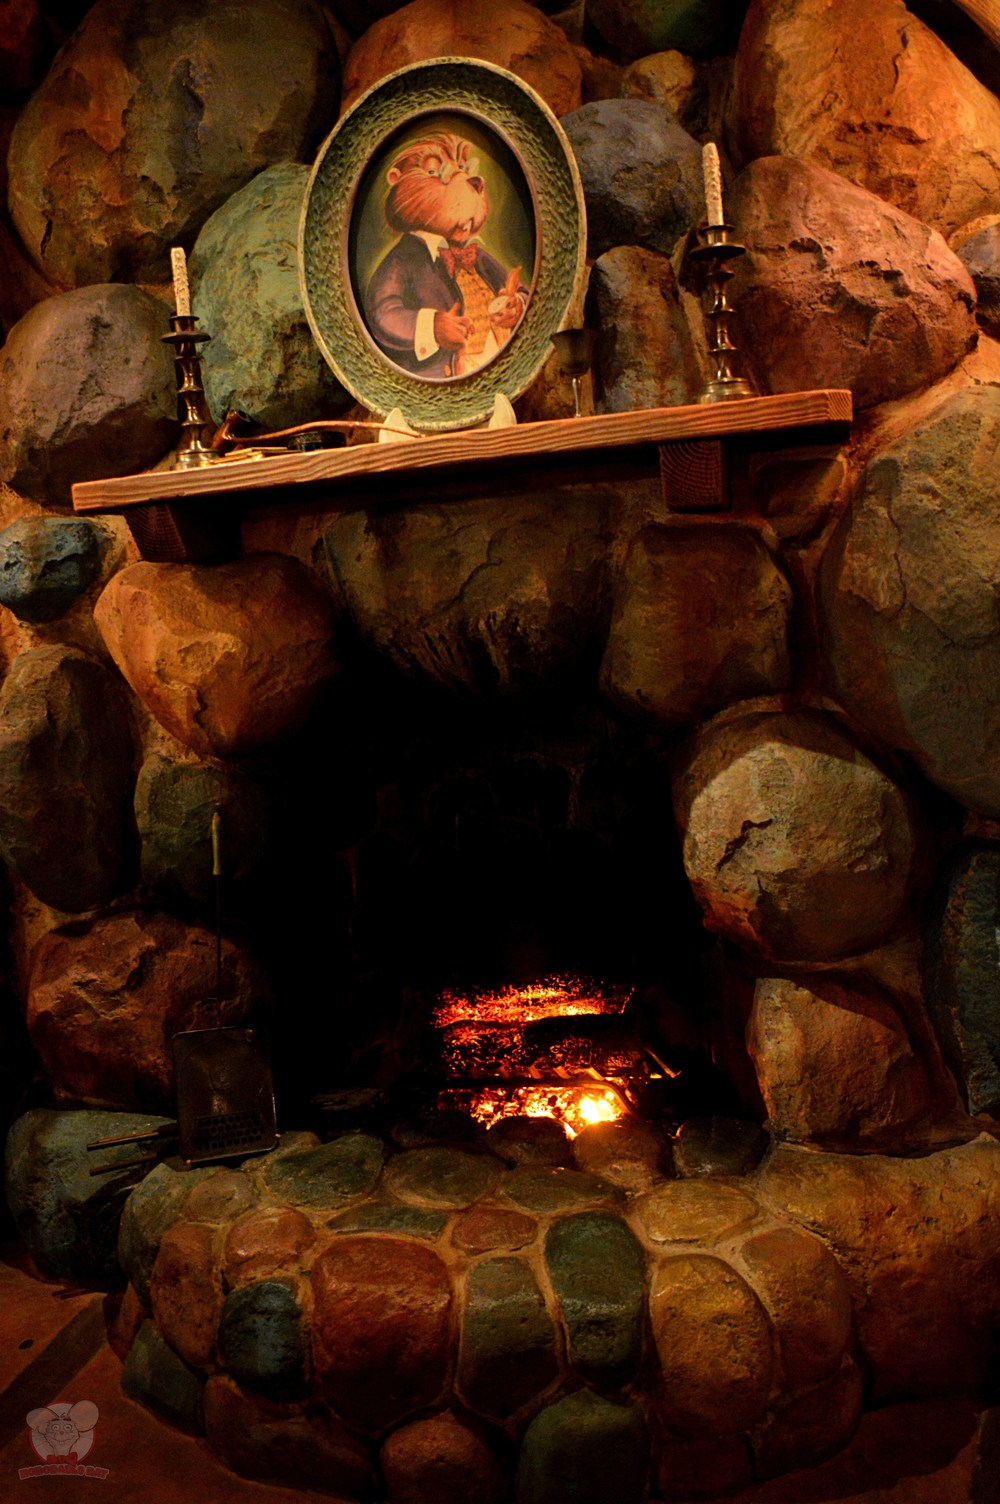 Grandma's Fireplace